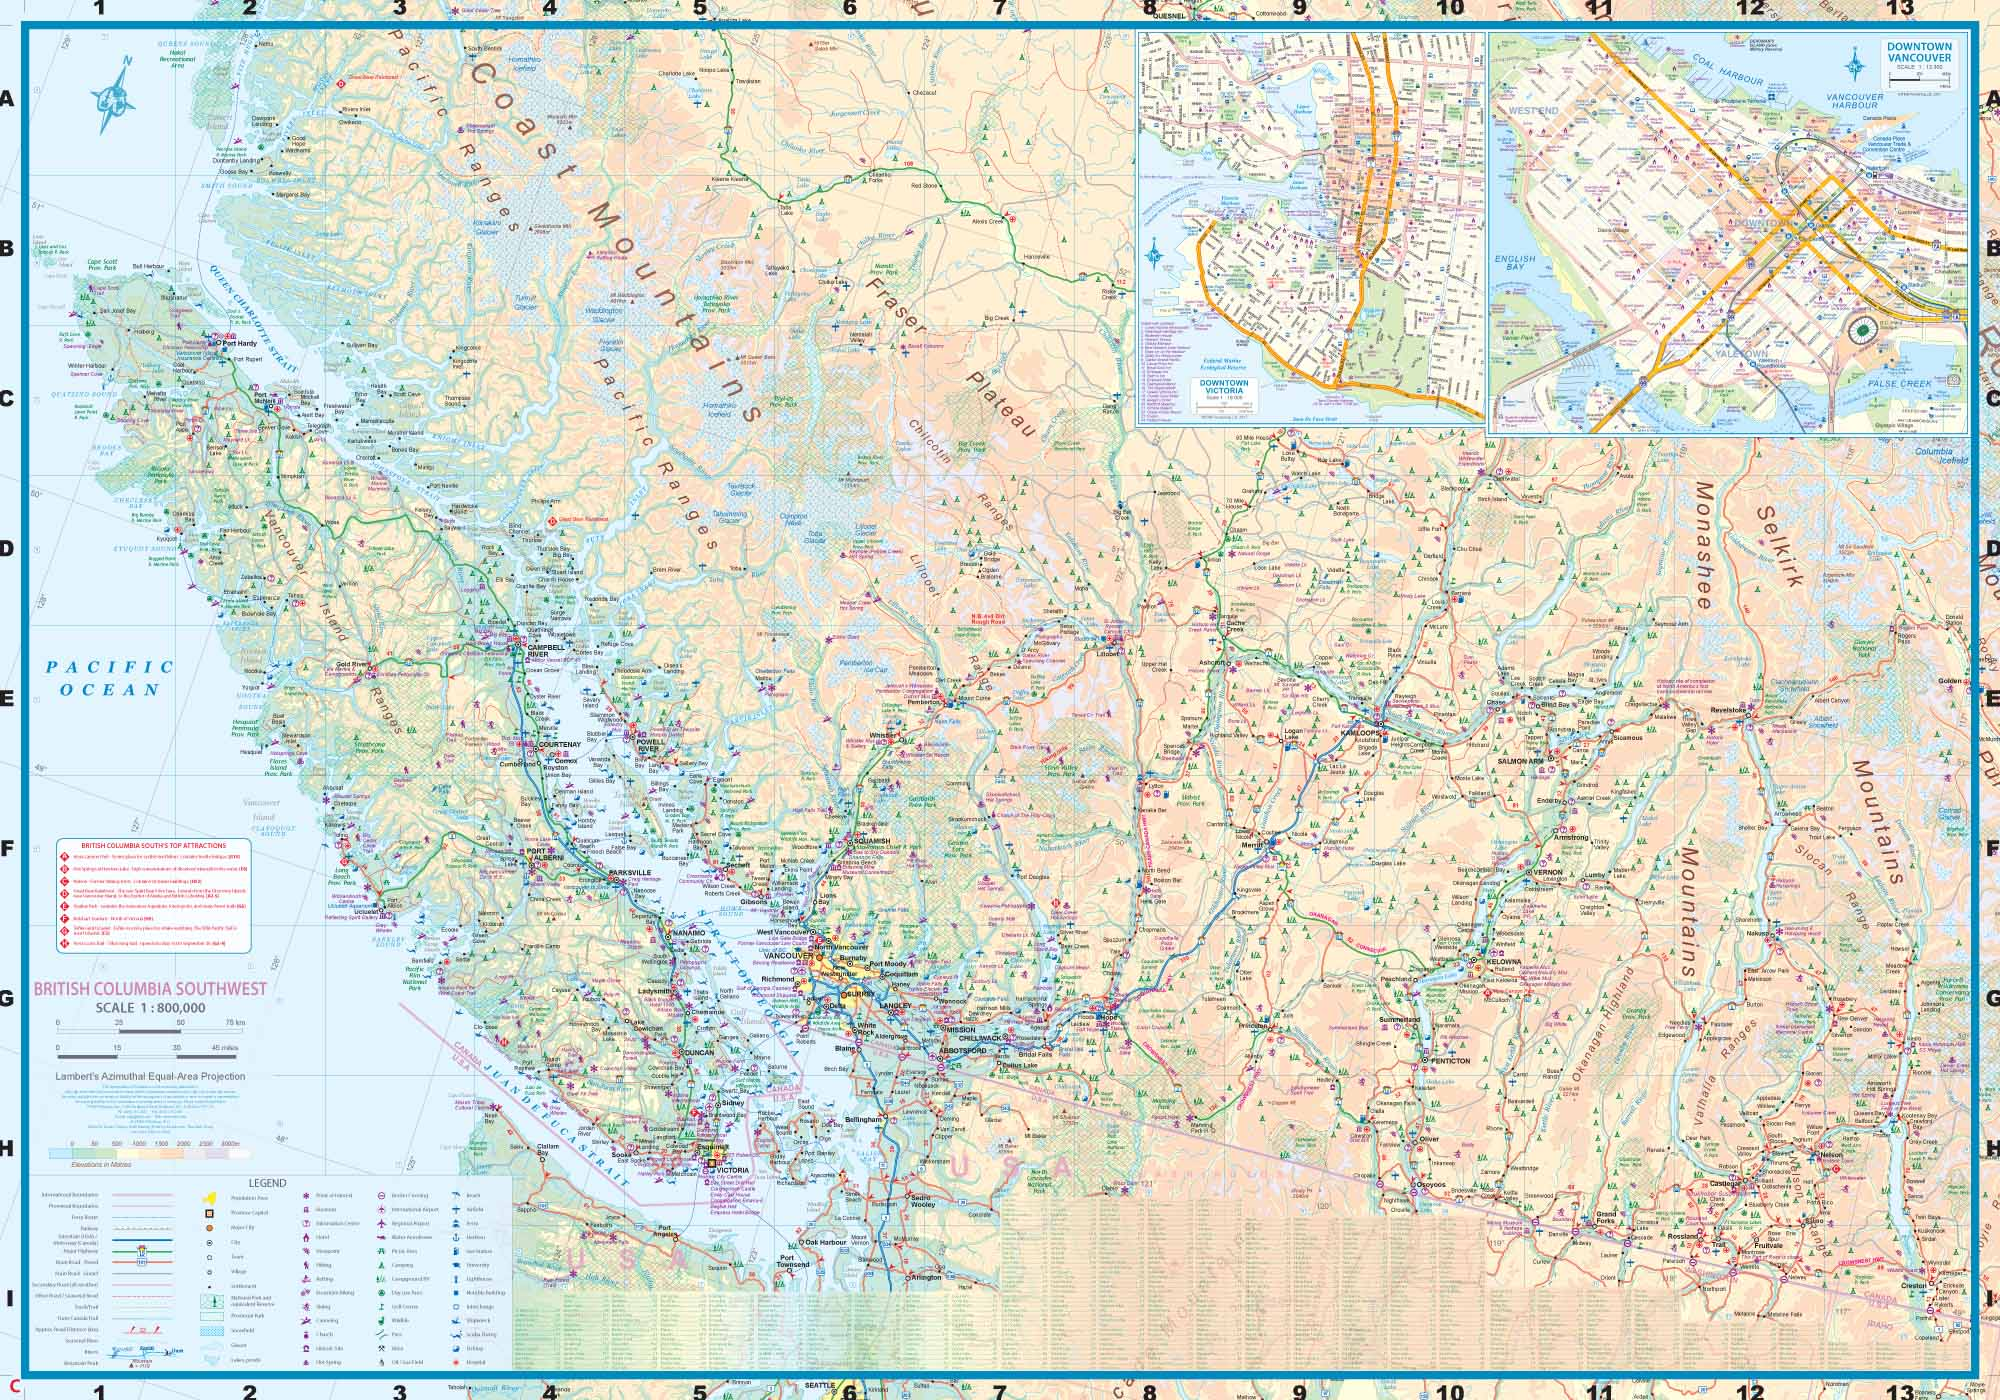 Bc Washington Map.Maps For Travel City Maps Road Maps Guides Globes Topographic Maps